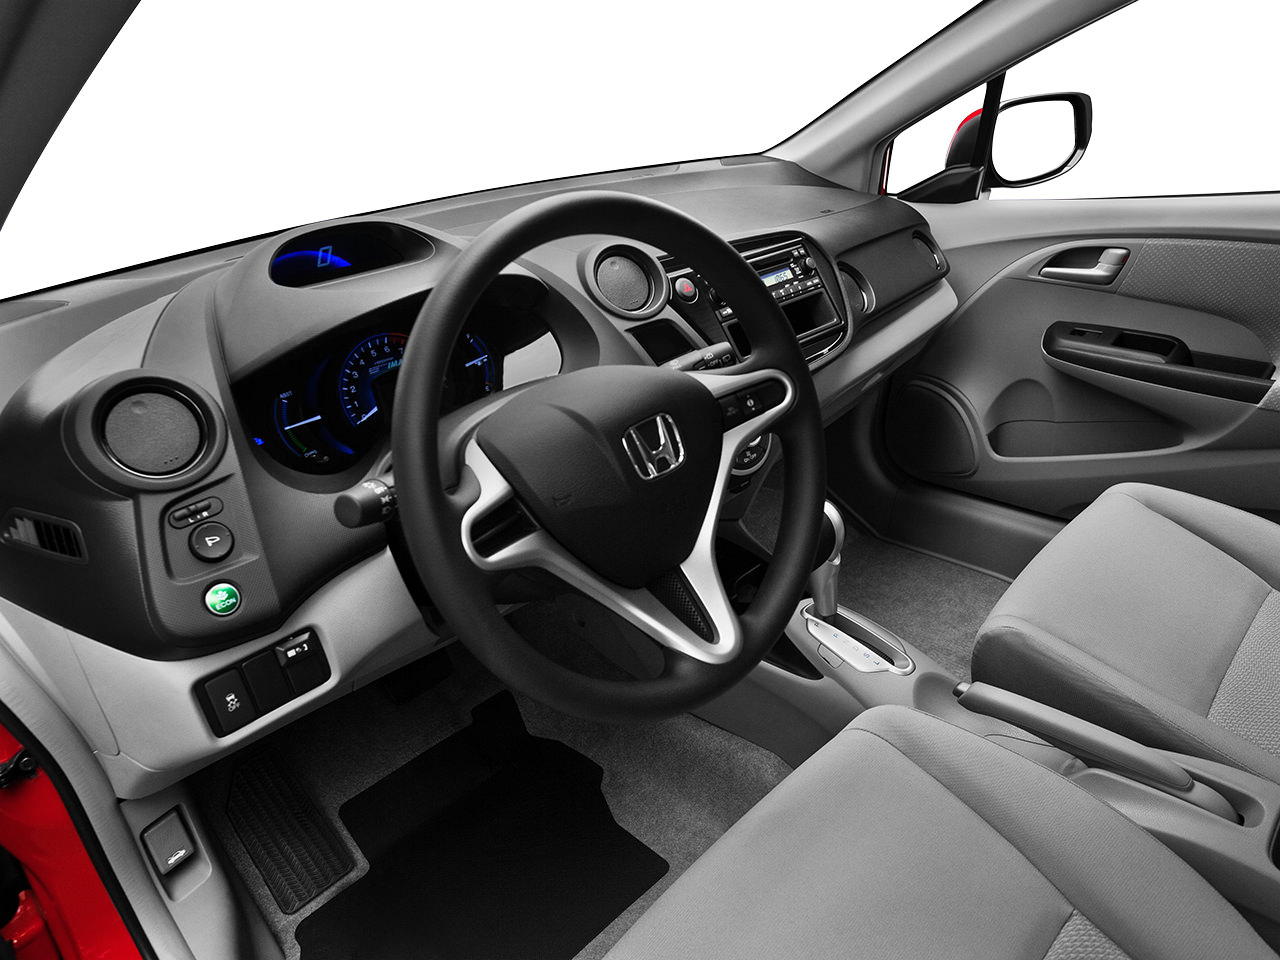 Honda Insight 2012 Interior